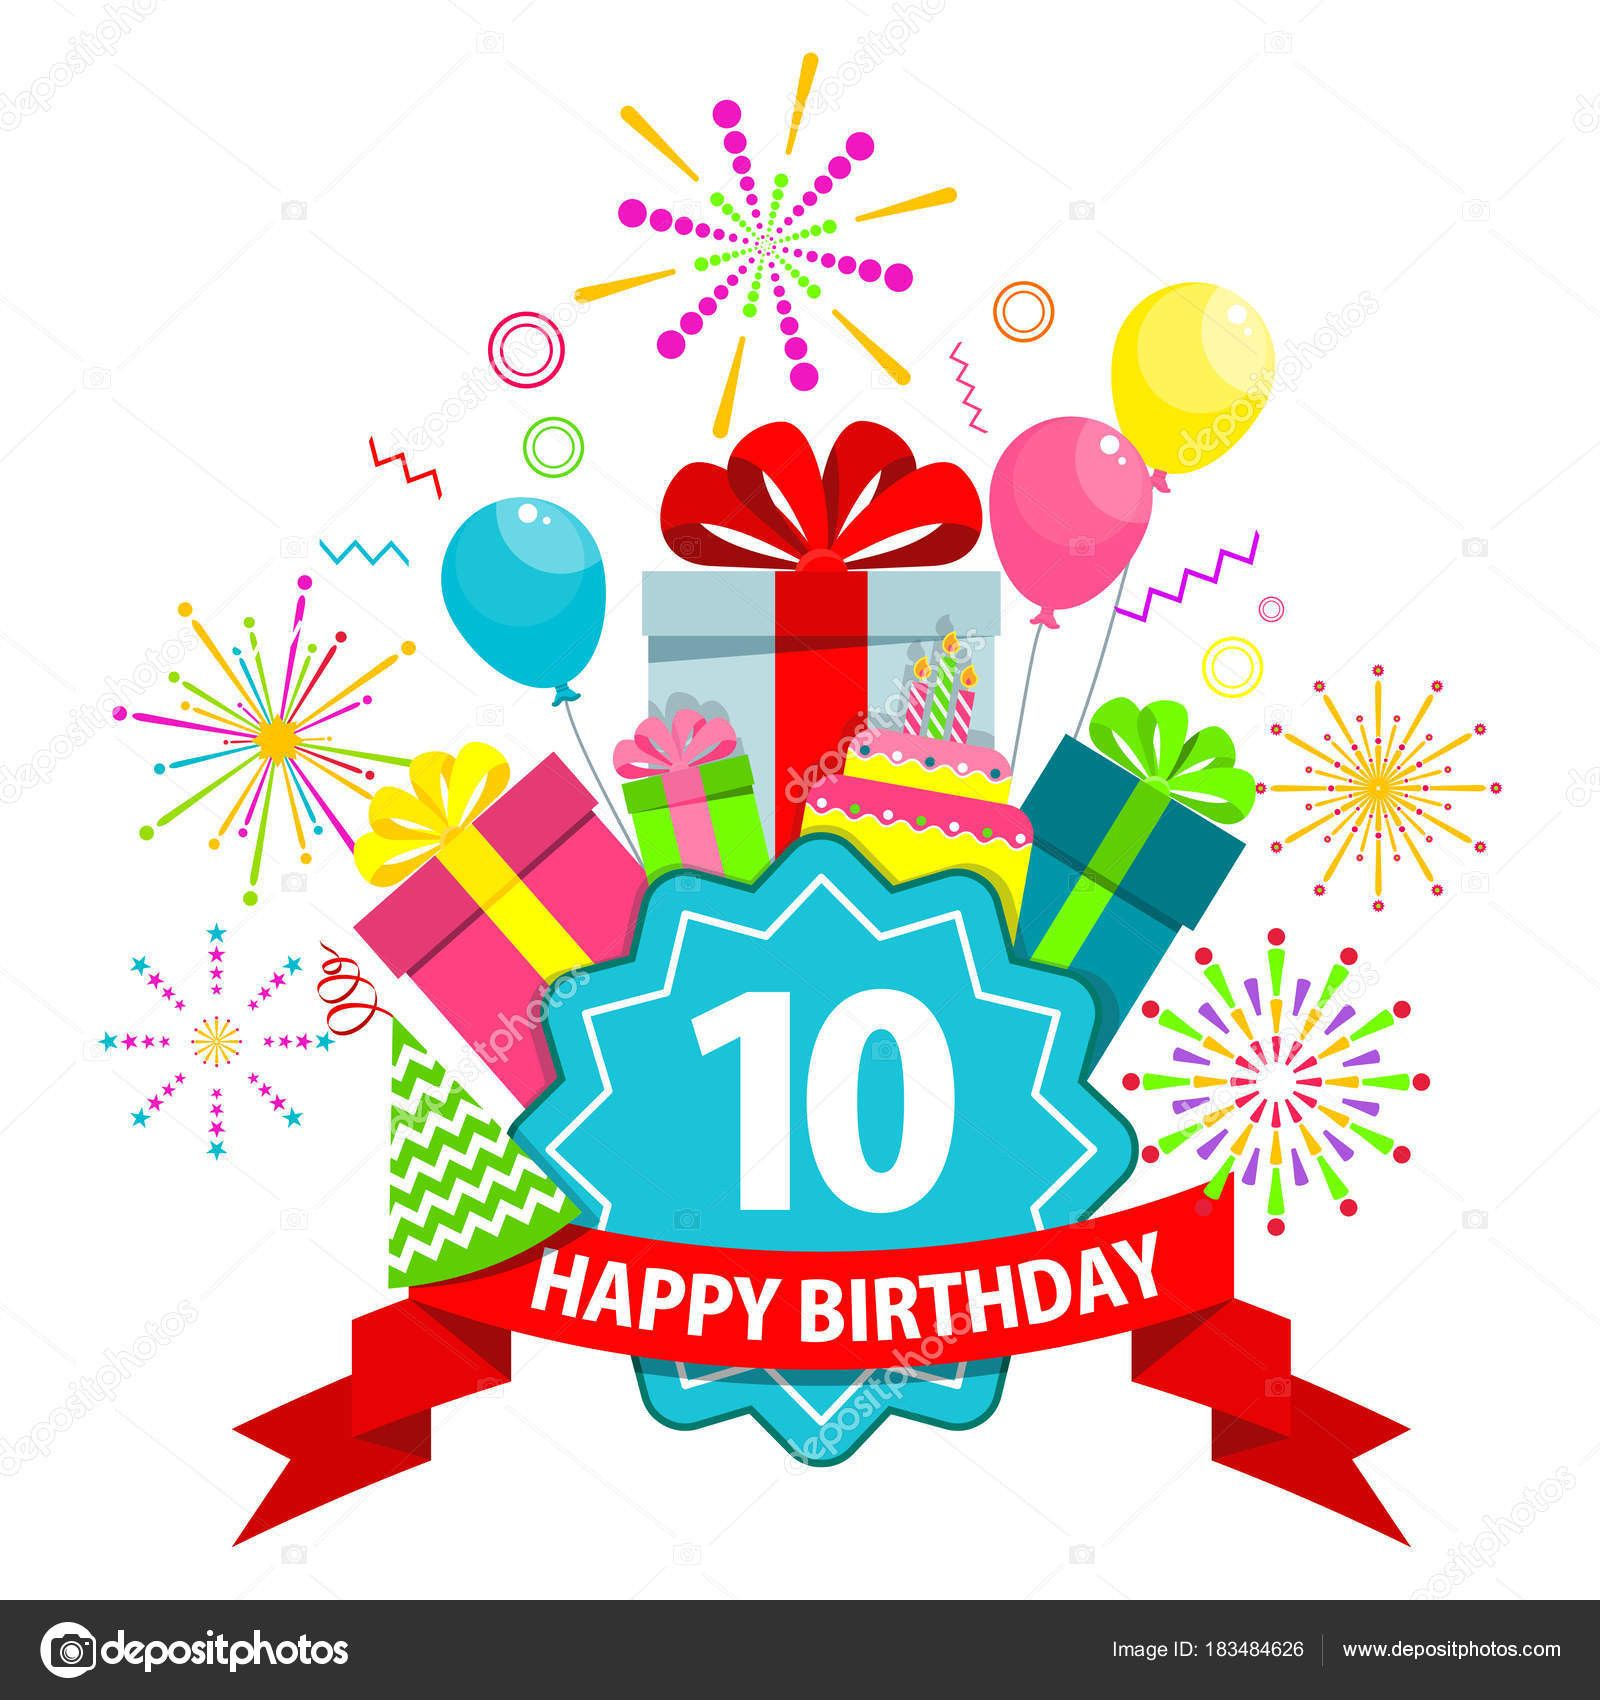 Stock Illustration Happy Birthday Card Ten Years Les 20 Meilleures Idees Cart Carte Anniversaire 10 Ans Carte Joyeux Anniversaire Carte Invitation Anniversaire